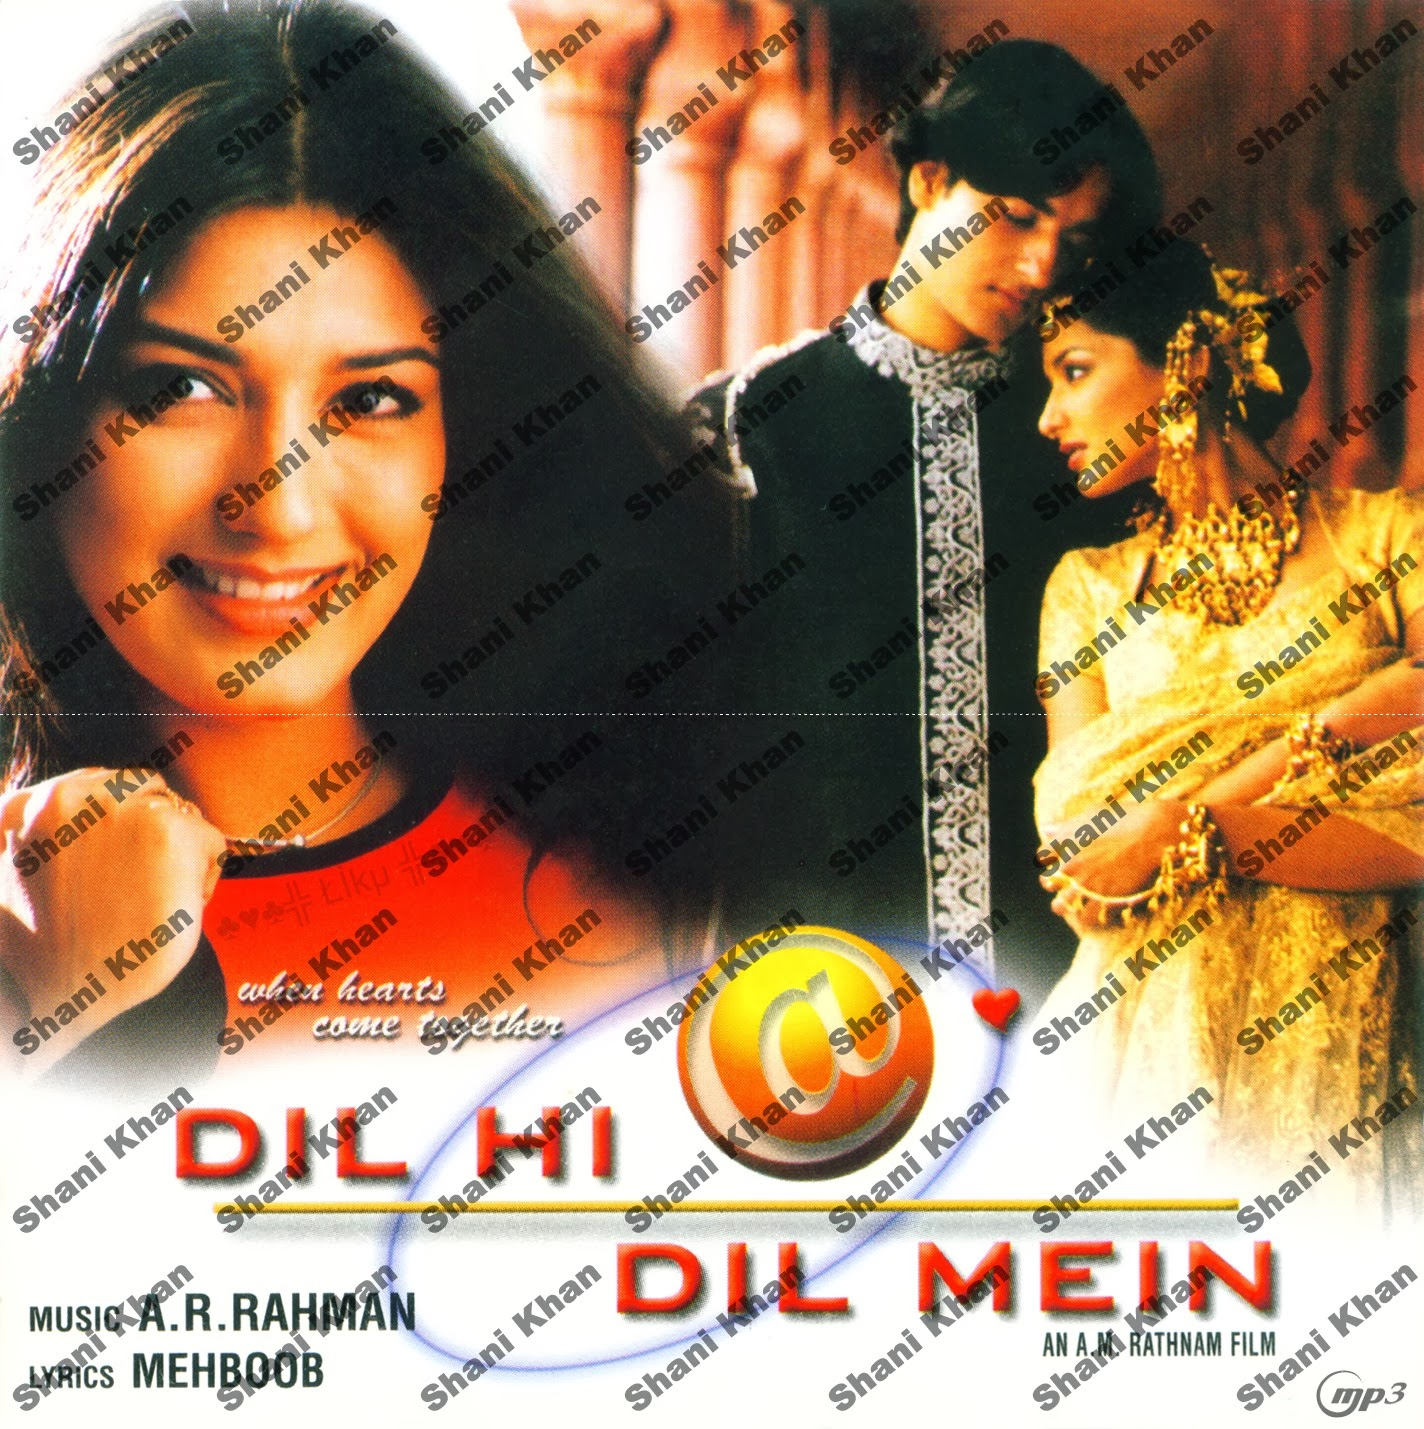 Im A Rider Song Download 320kbps: Bollywood Music A To Z Cds. Visit To Download Http